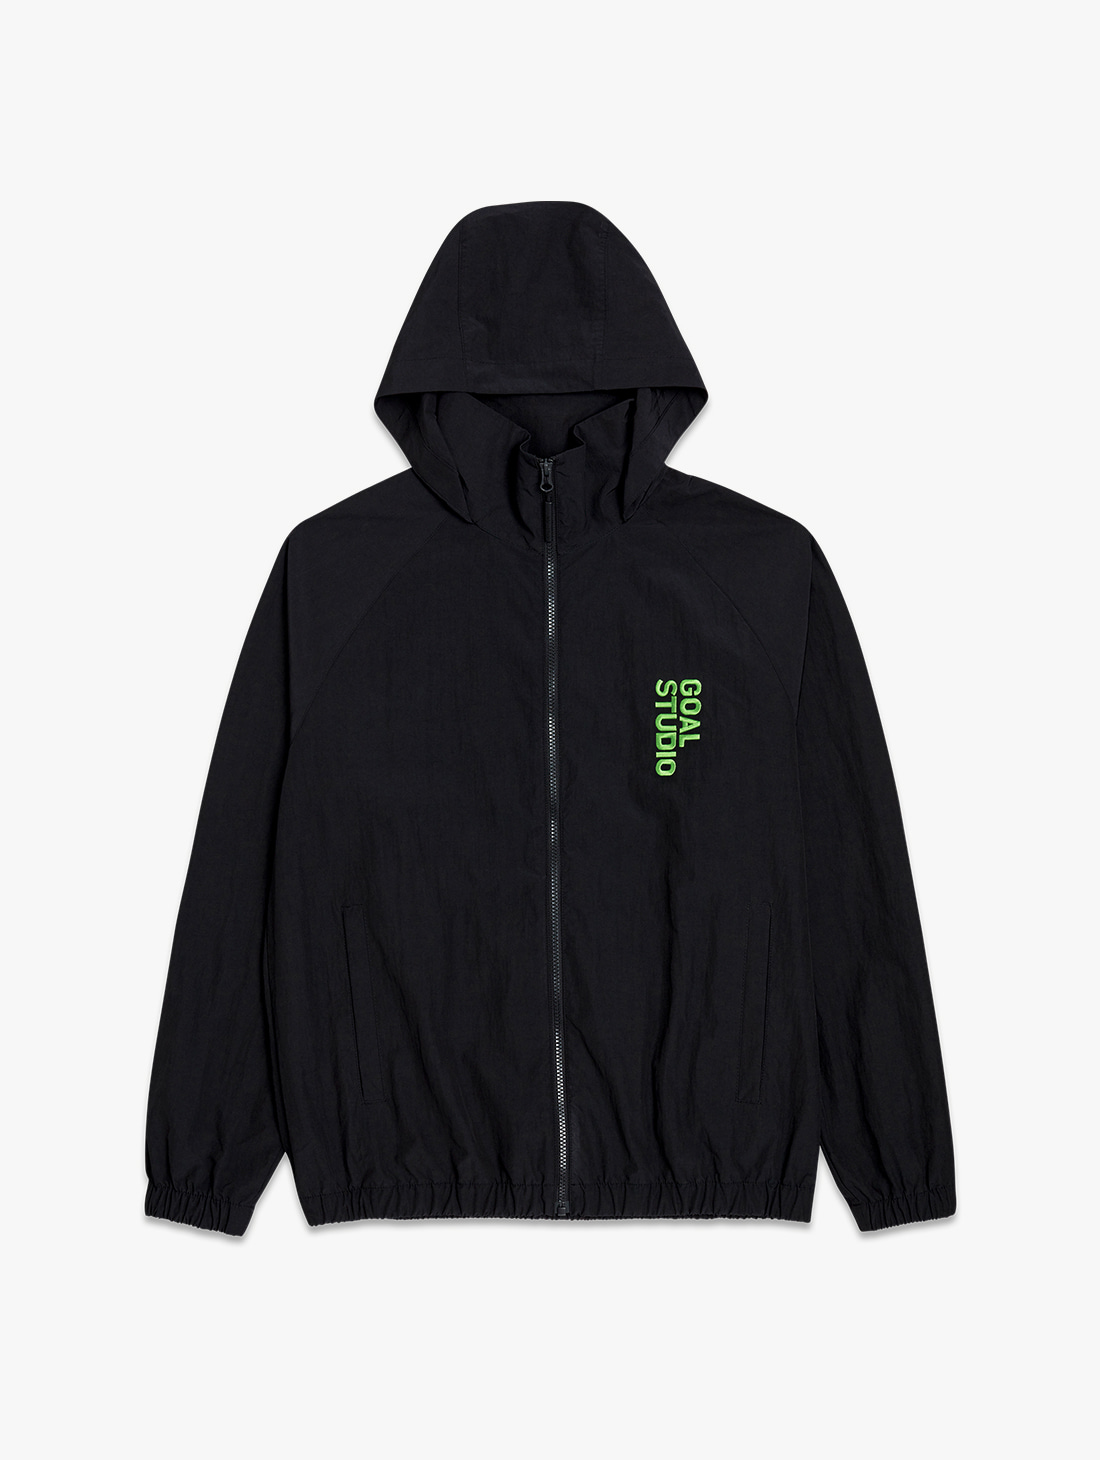 GOALSTUDIO NYLON BLEND WIND BREAKER (2 Colors)